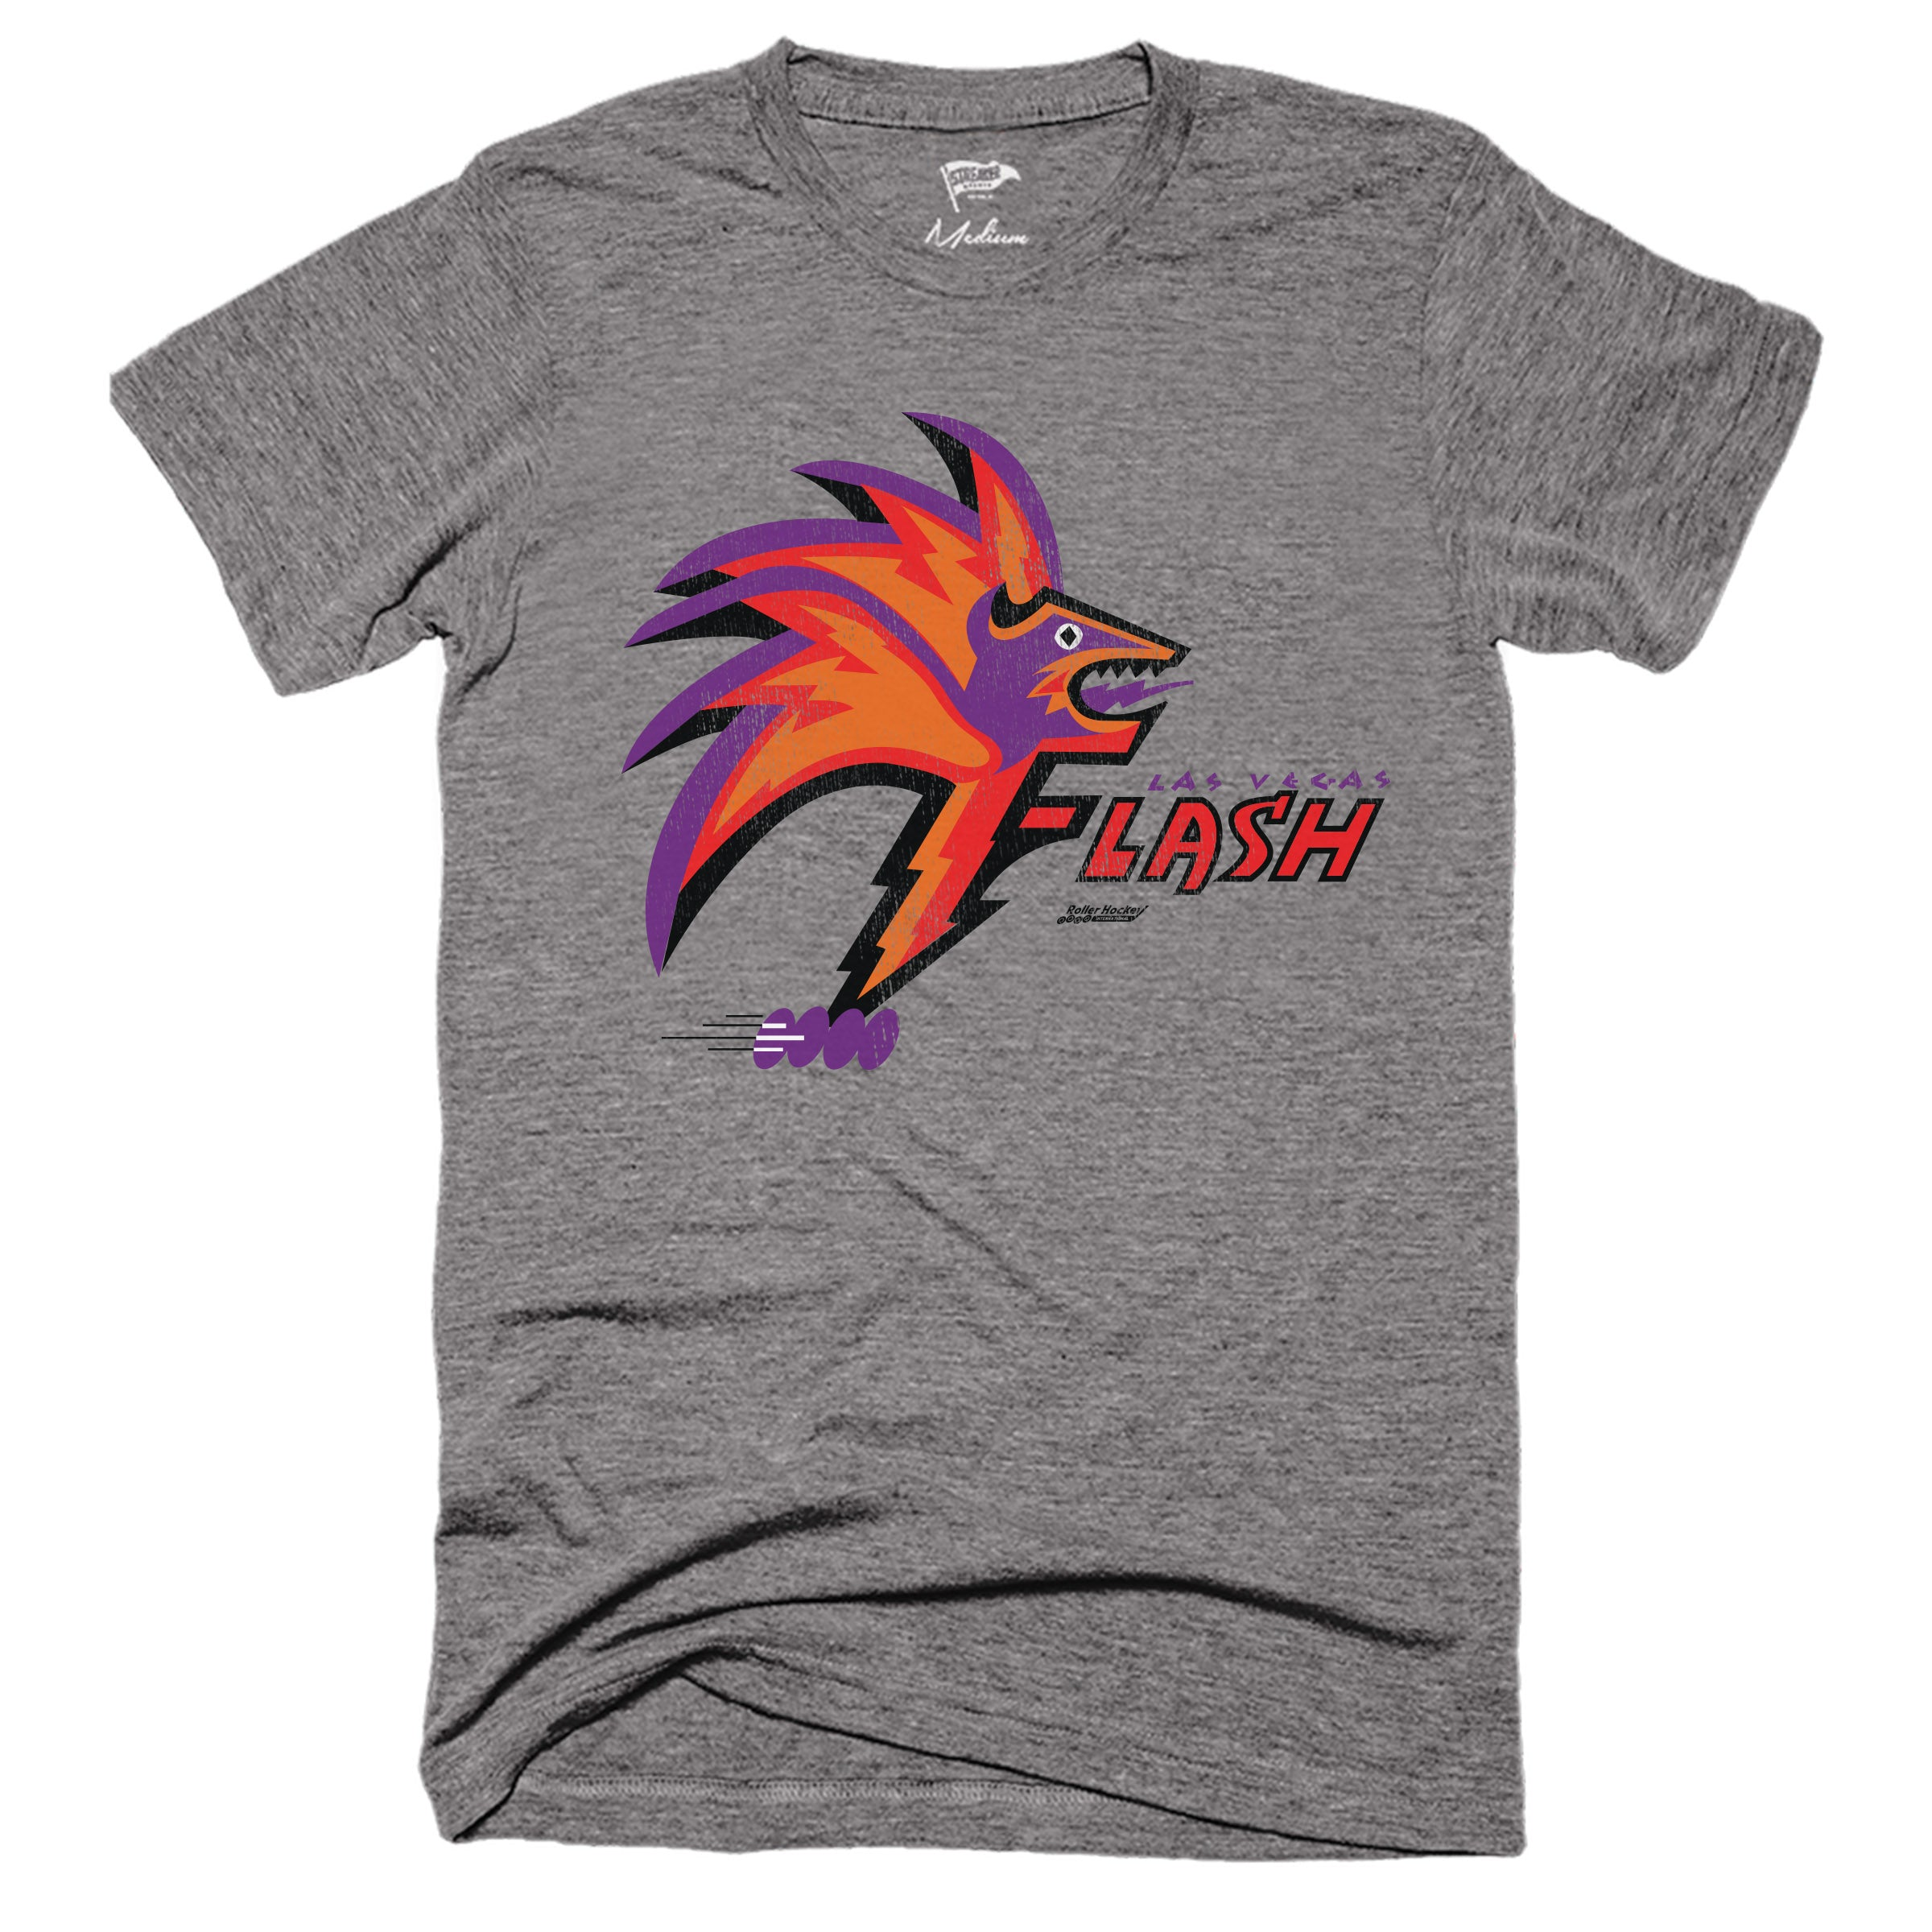 1993 Las Vegas Flash Tee - Streaker Sports